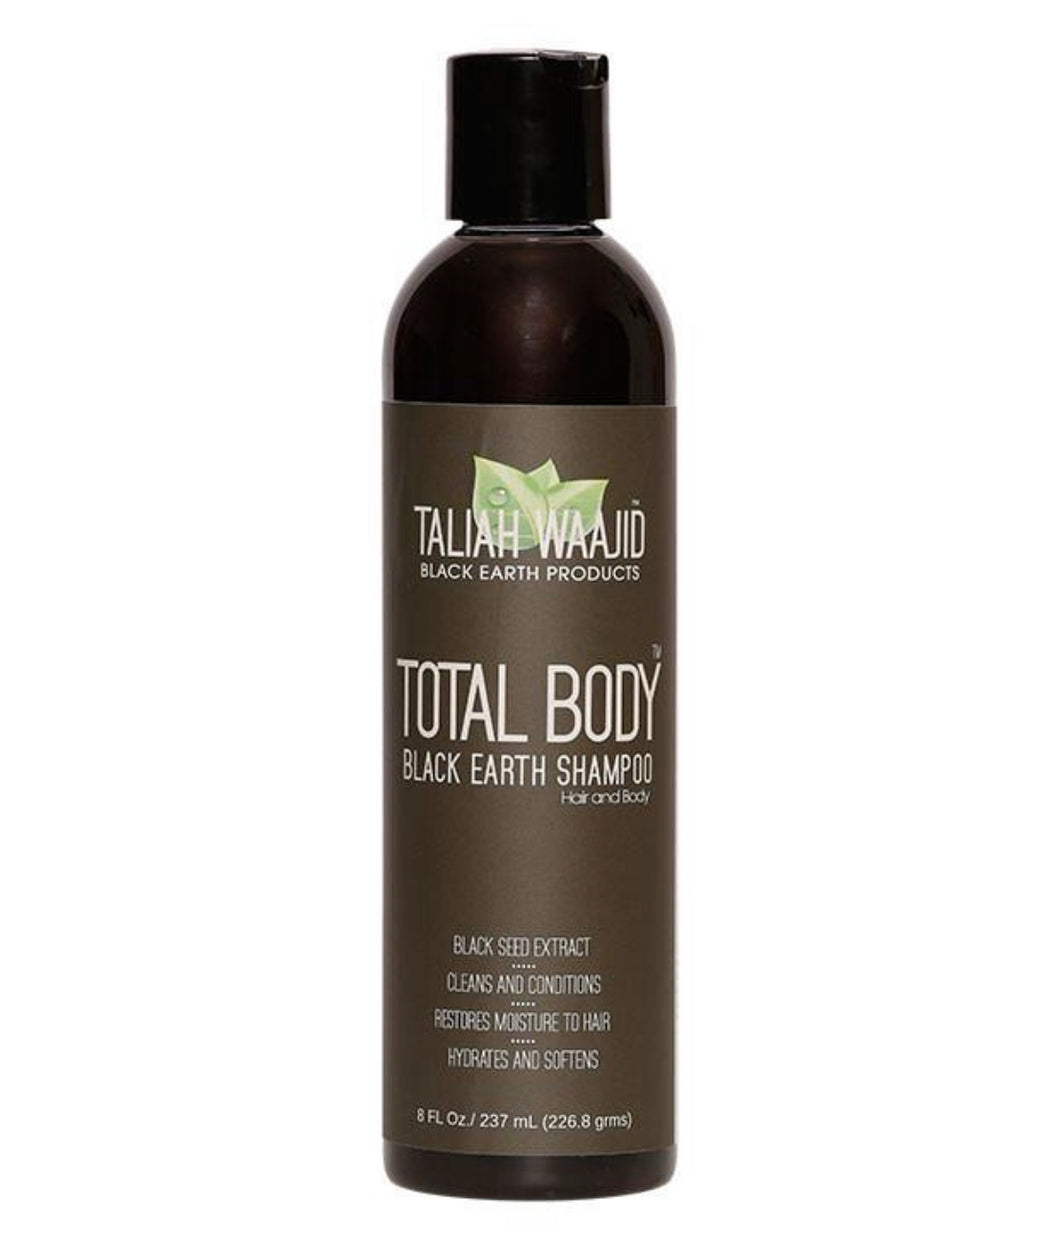 Taliah Waajid Total Body Black Earth Shampoo 8 oz